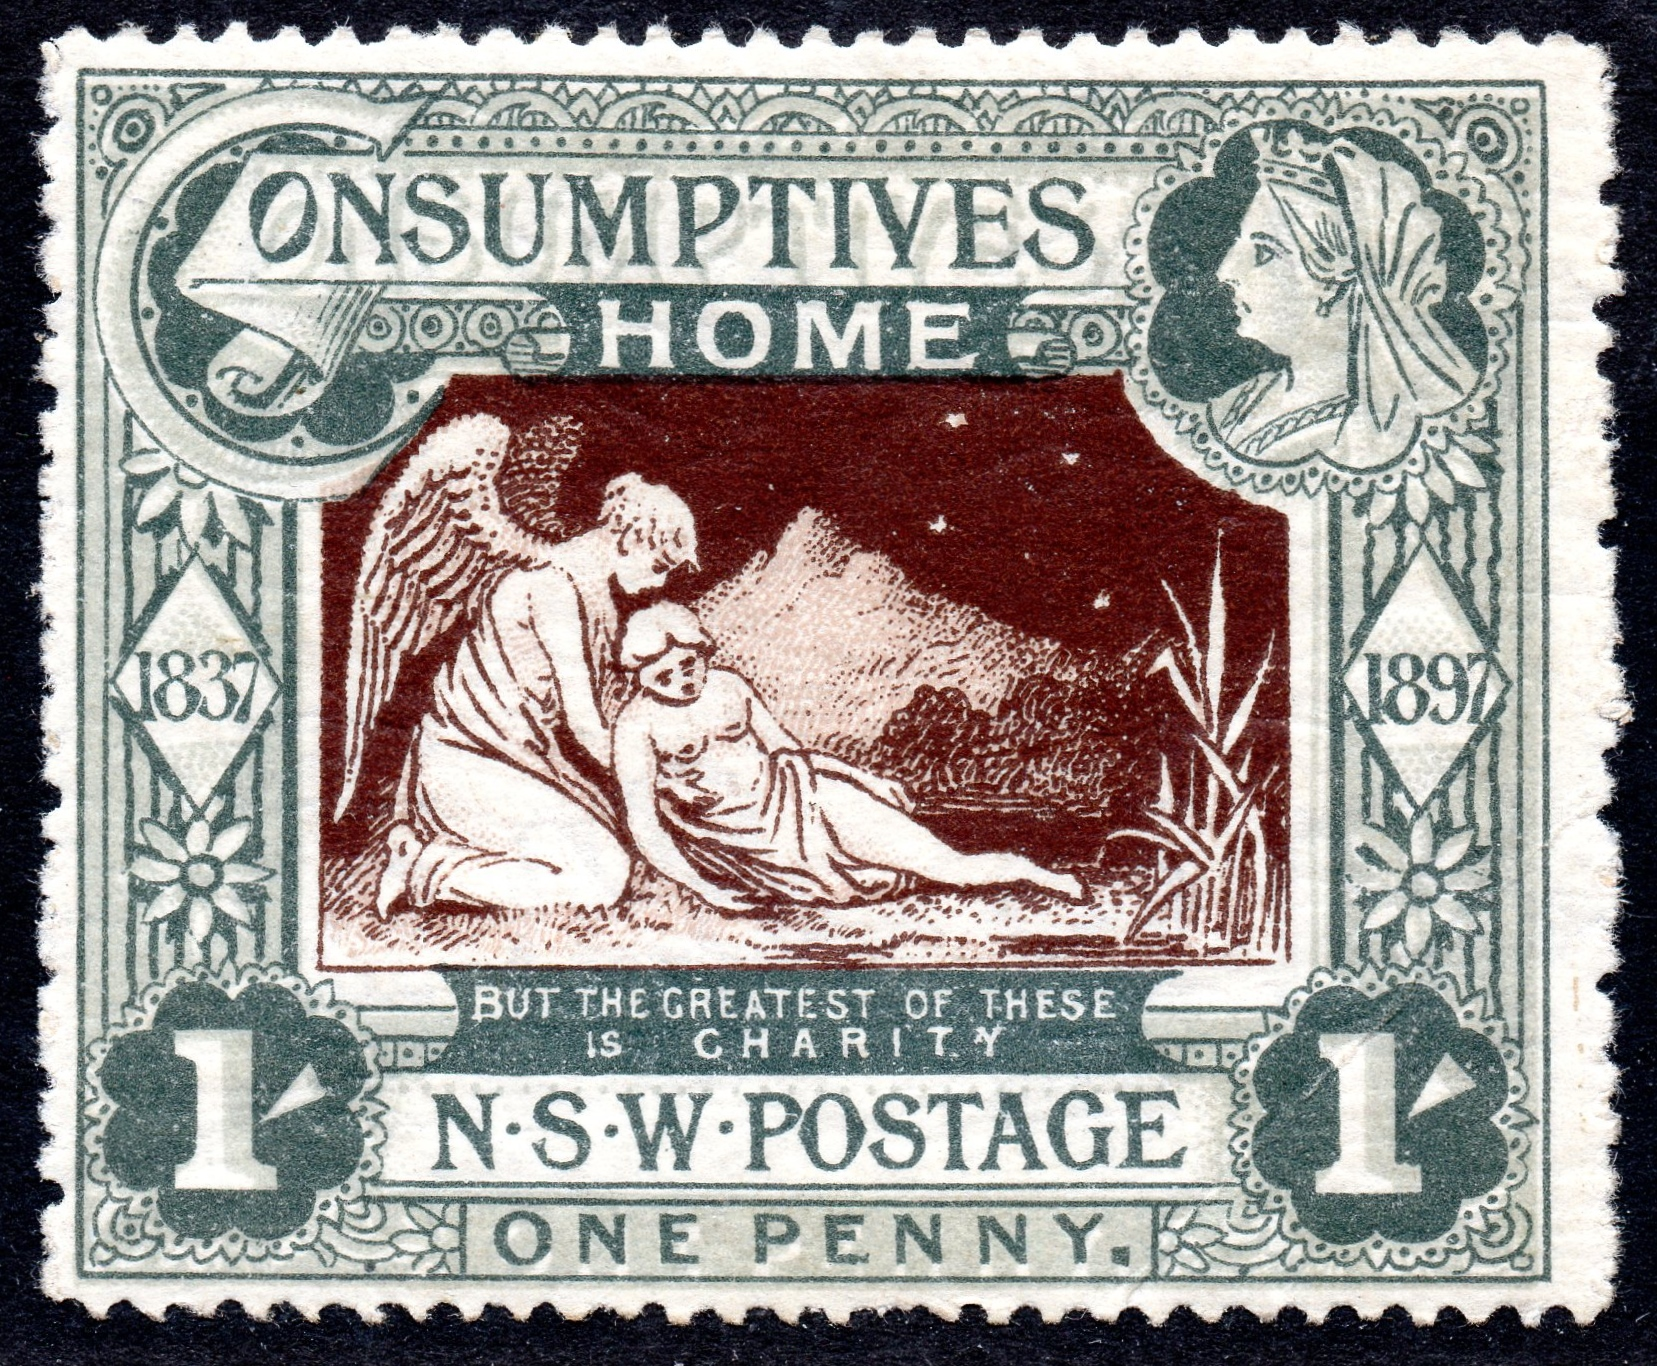 Australia New South Wales 1897 Consumptive Homes 1s Fresh Mounted Mint SG280 - SOLD